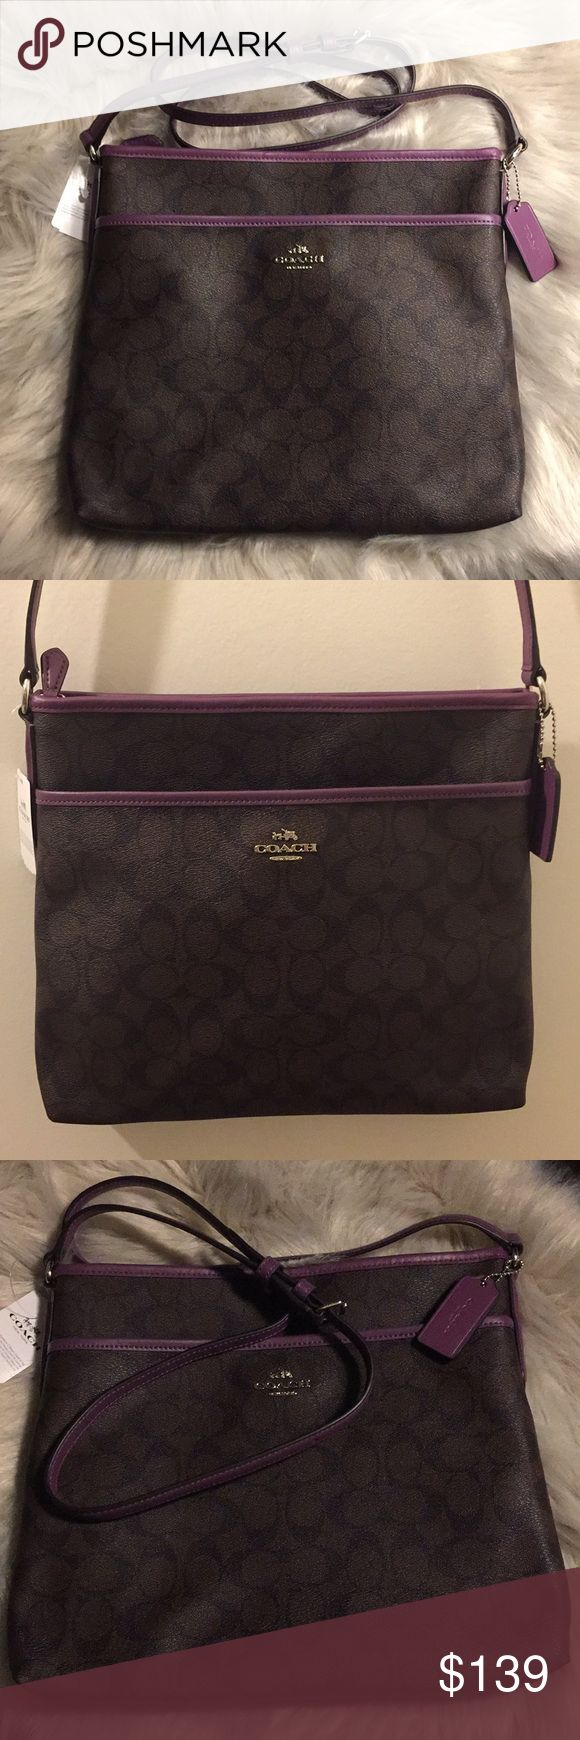 """💯% Authentic Coach Signature Crossbody Bag Beautiful brown/berry color signature coated/jacquard fabric zip-top closure, fabric lining inside zip, cell phone and multifunctional pockets. Long strap with a 21 1/2"""" drop for shoulder or crossbody wear. Very lightweight and excellent for everyday use. Bags Crossbody Bags"""